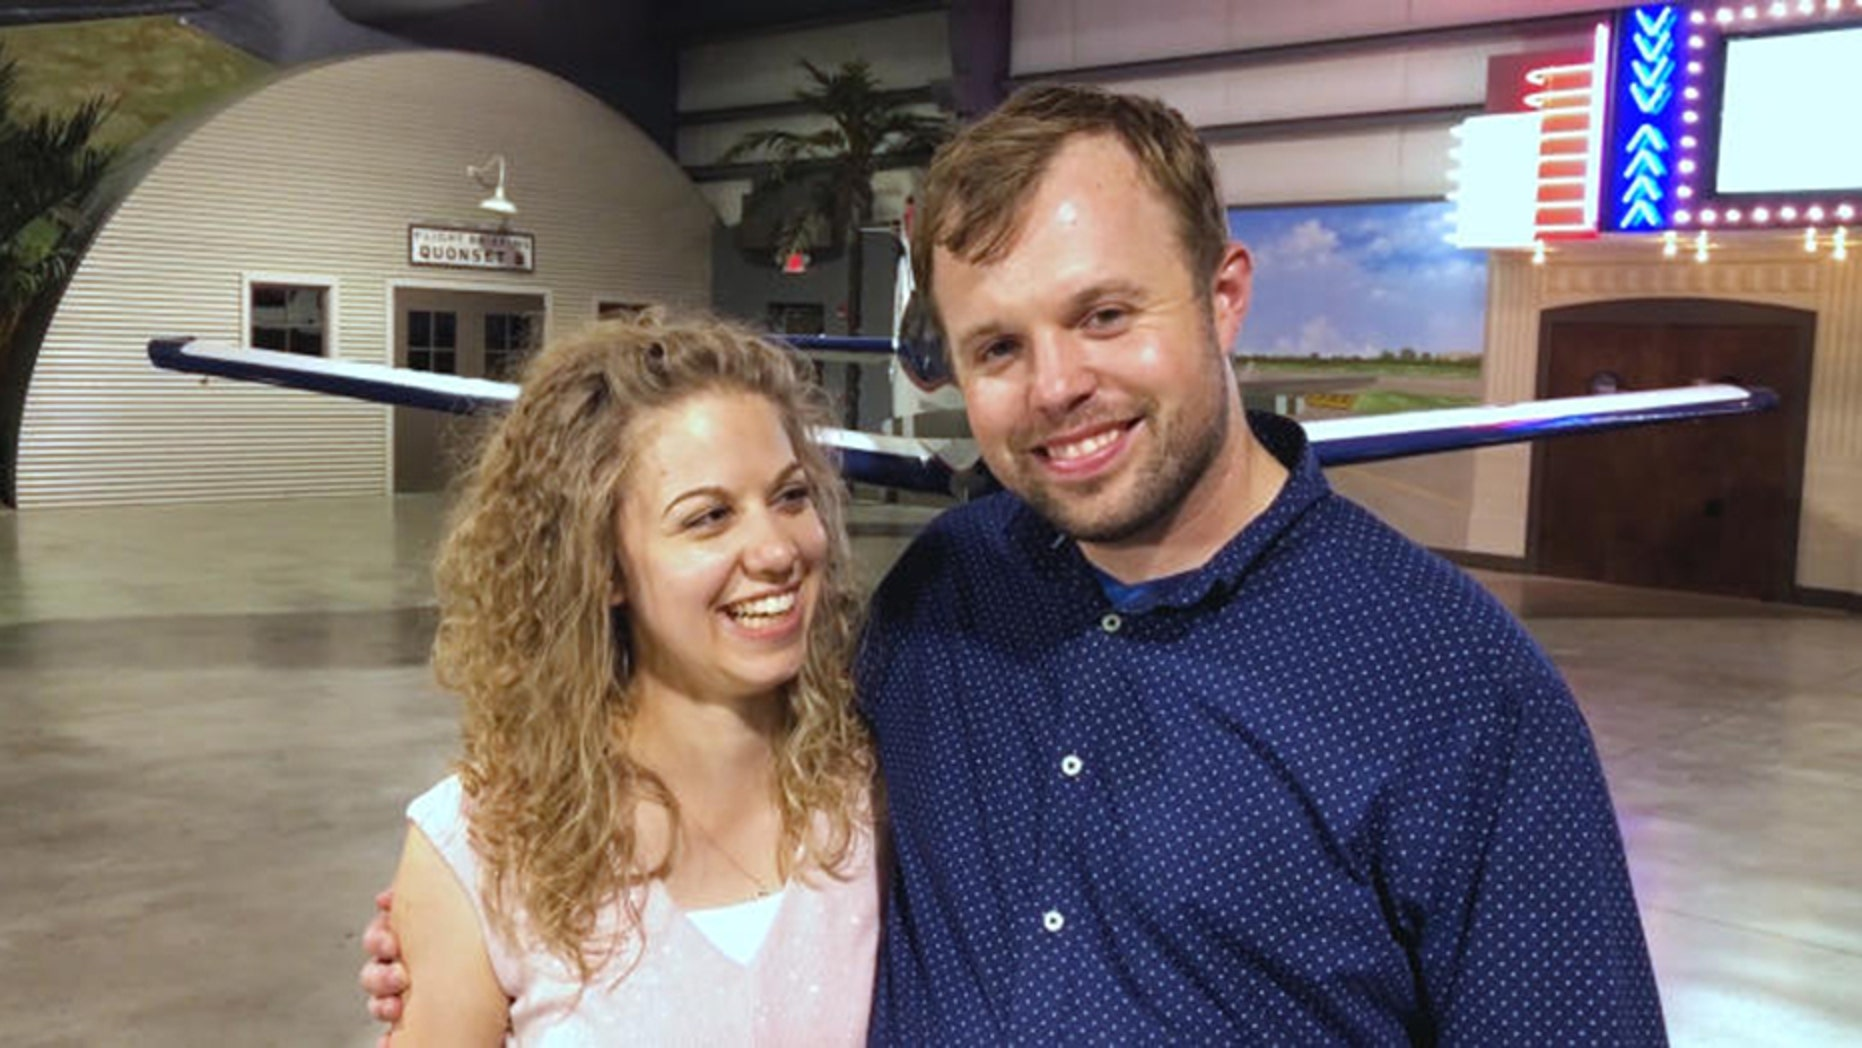 are any other duggars courting